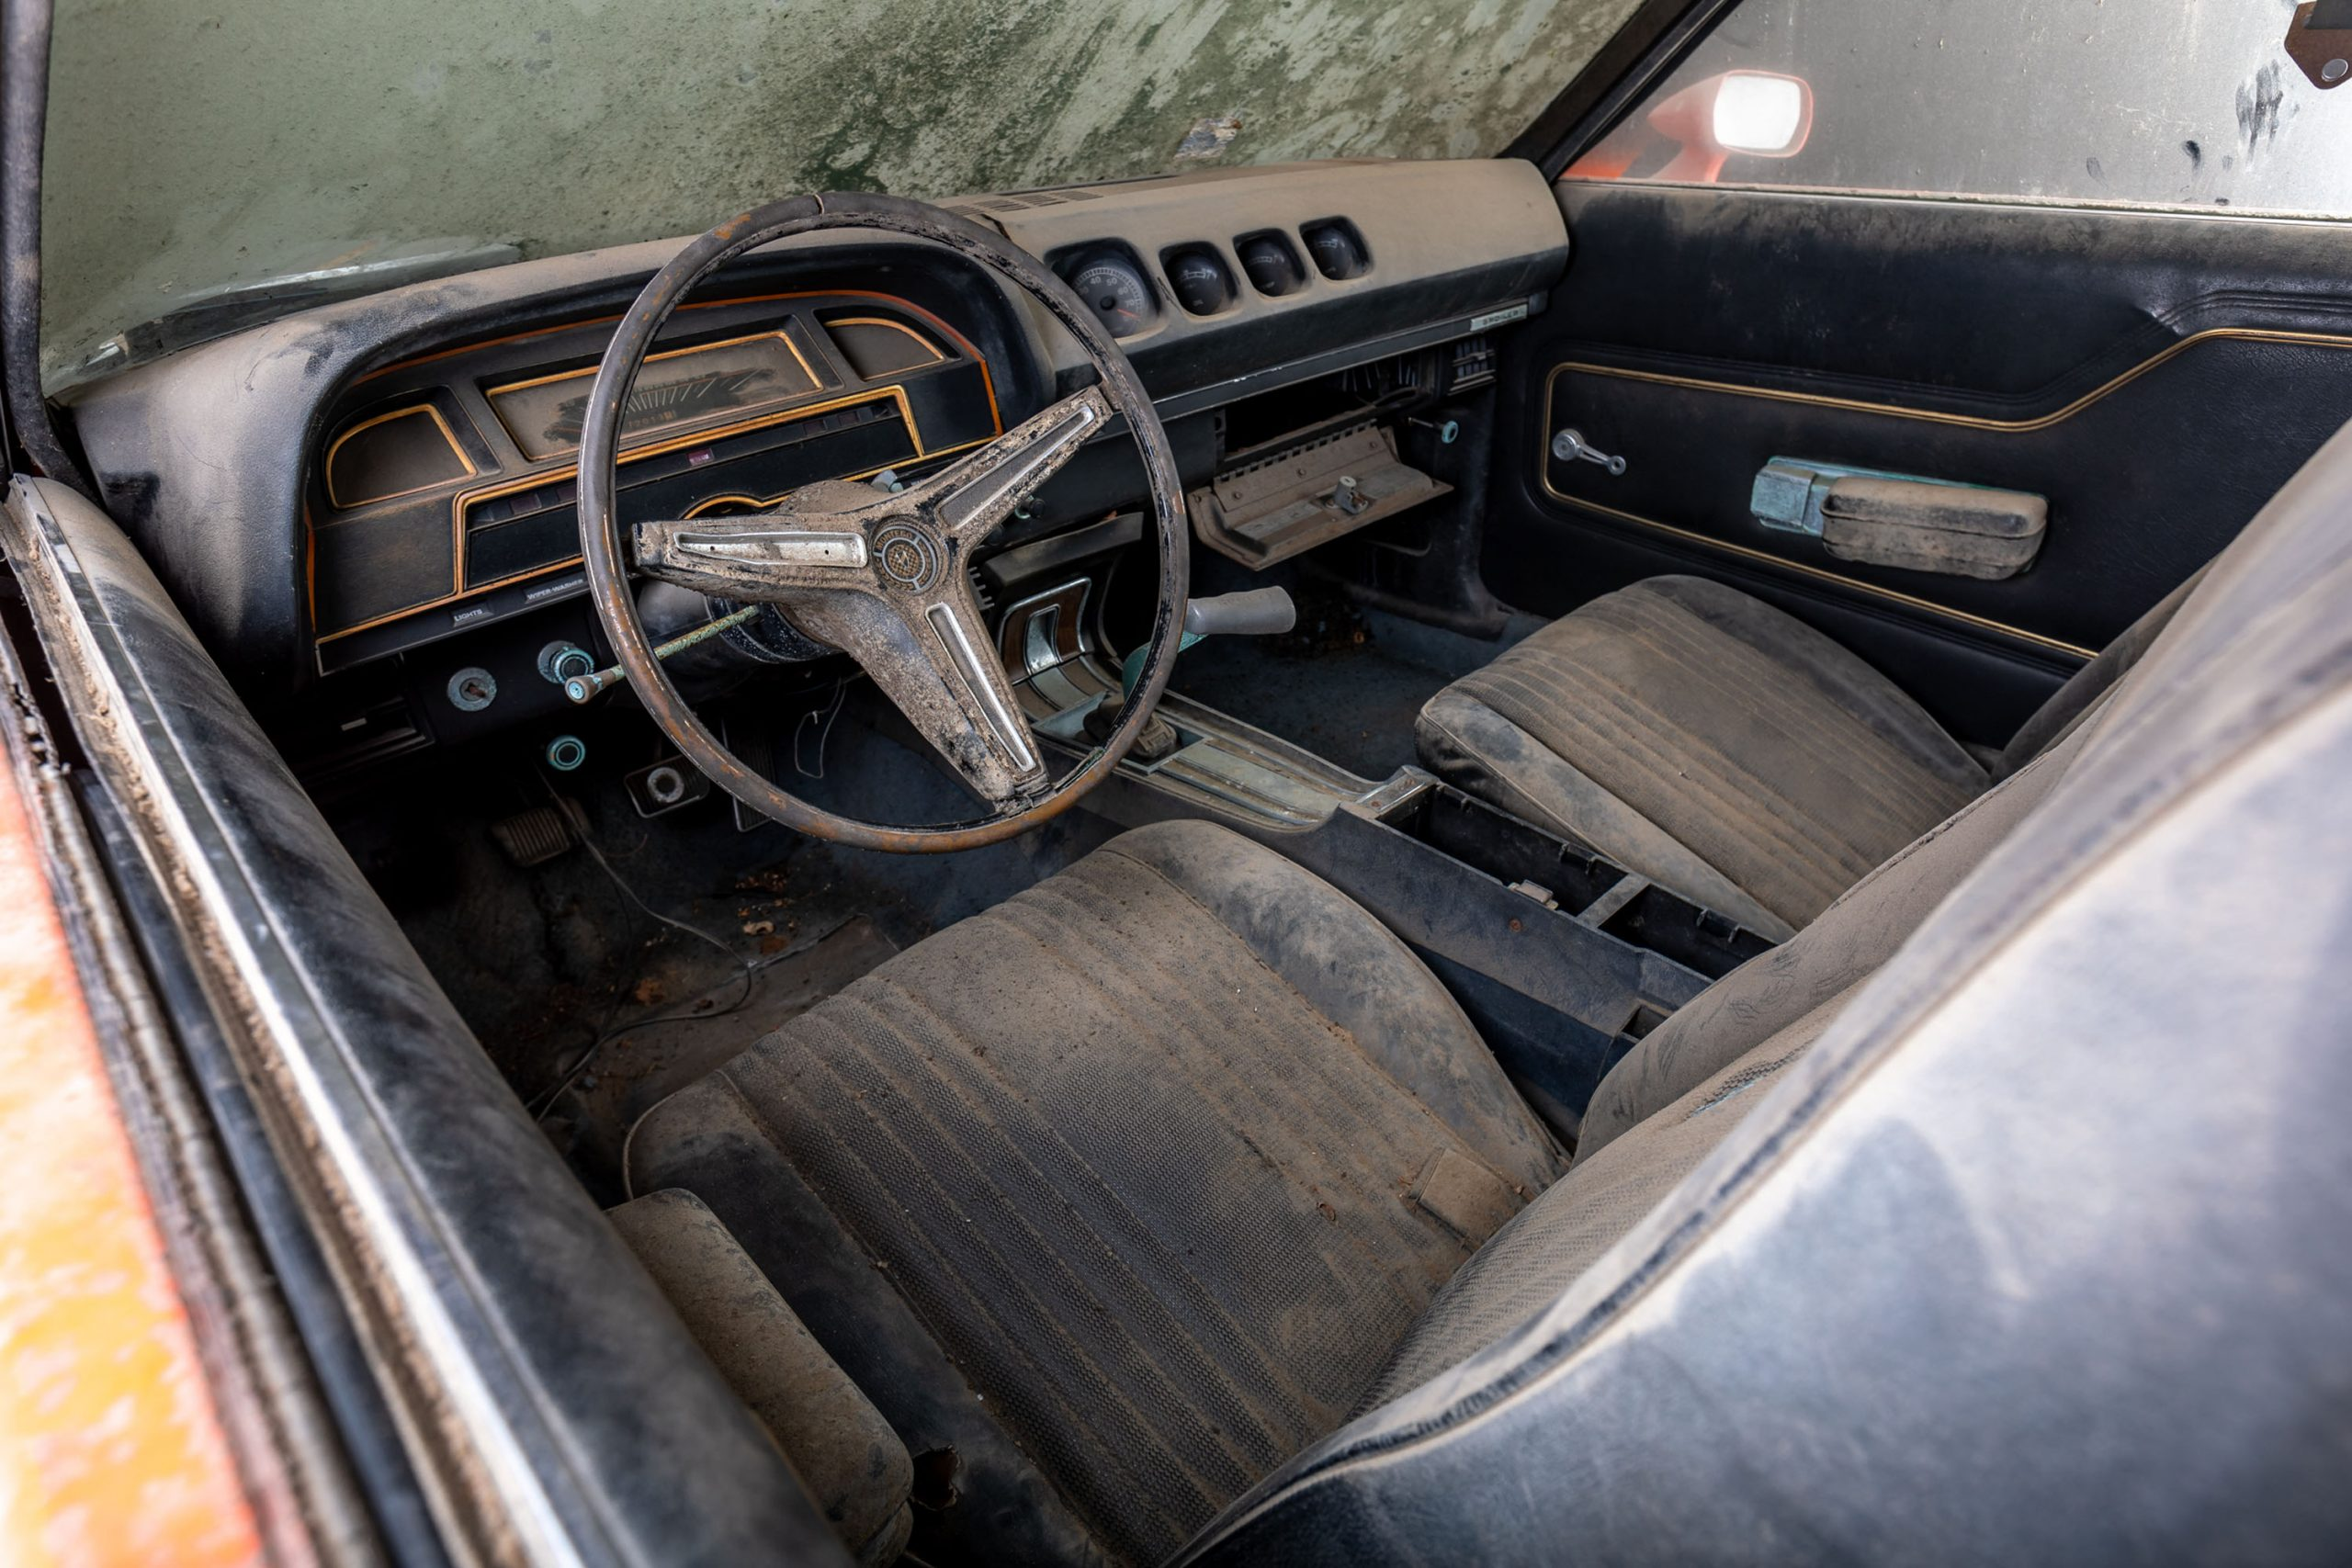 1970 Mercury Cyclone Spoiler Barn Find interior